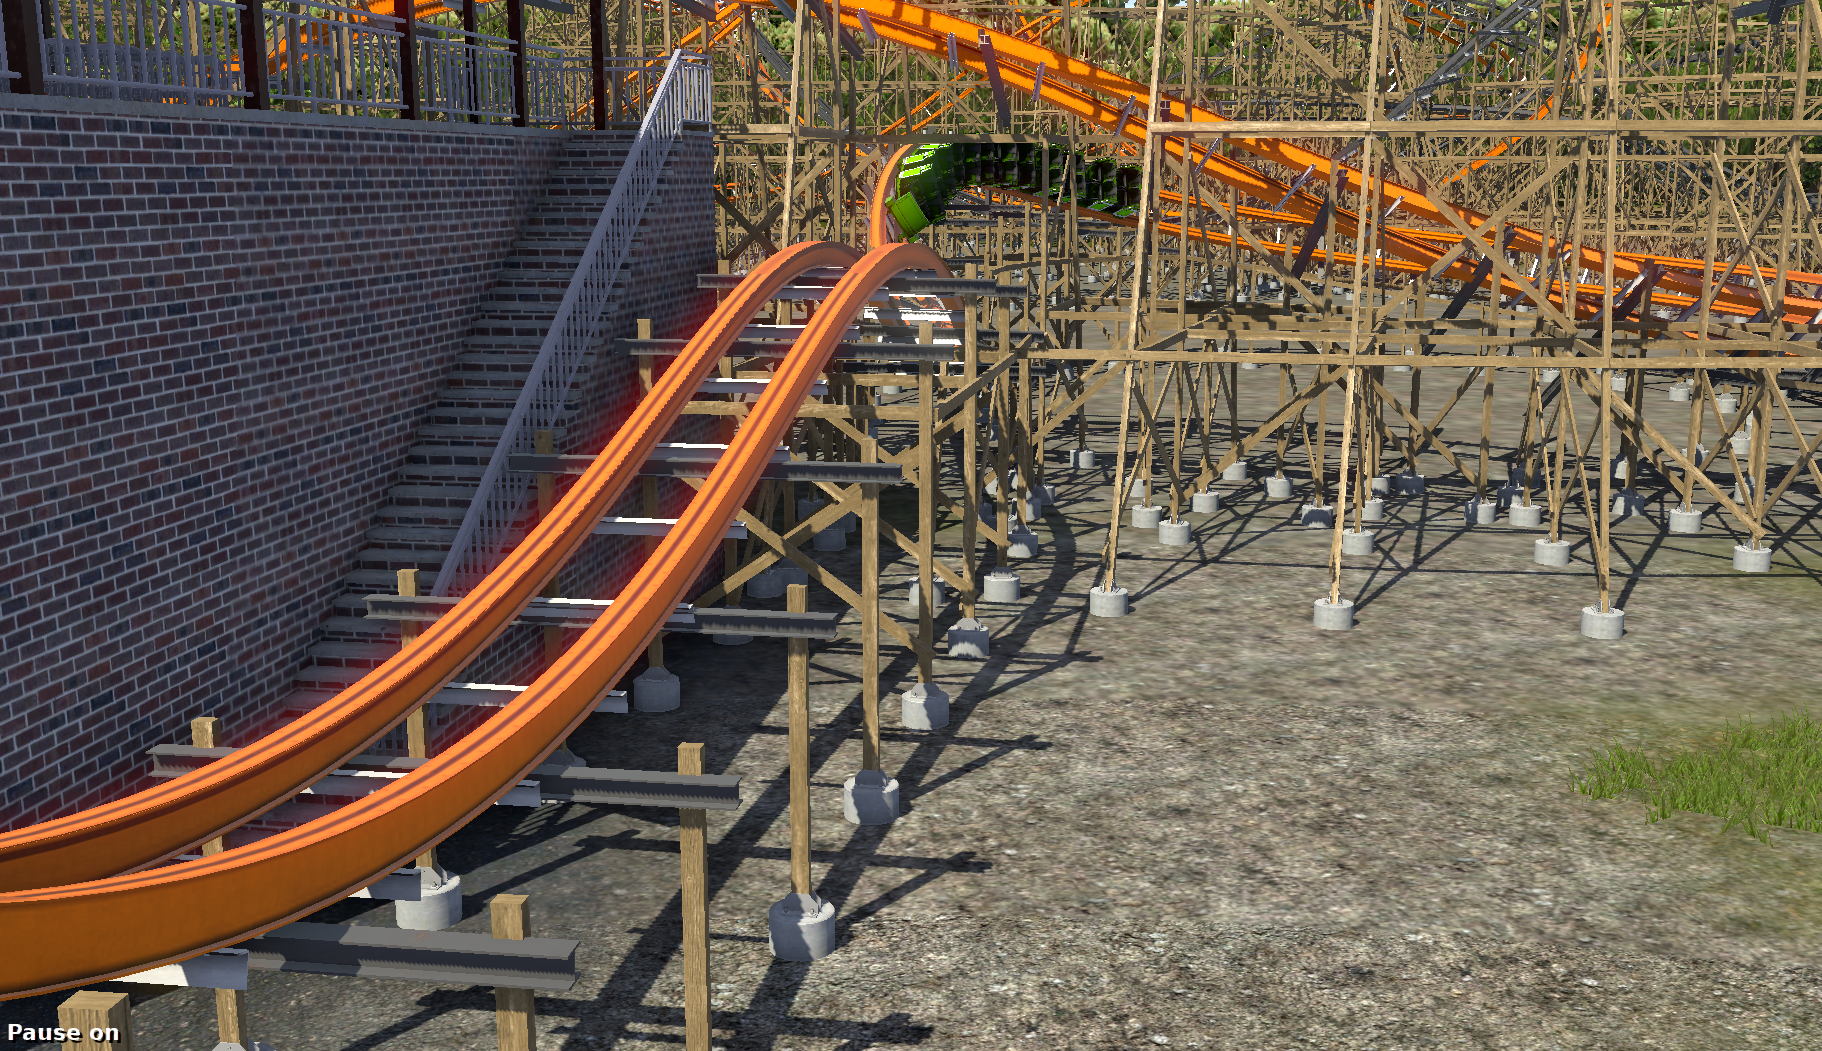 Twisted Tiger - RMC Gwazi - Downloads - RCTgo